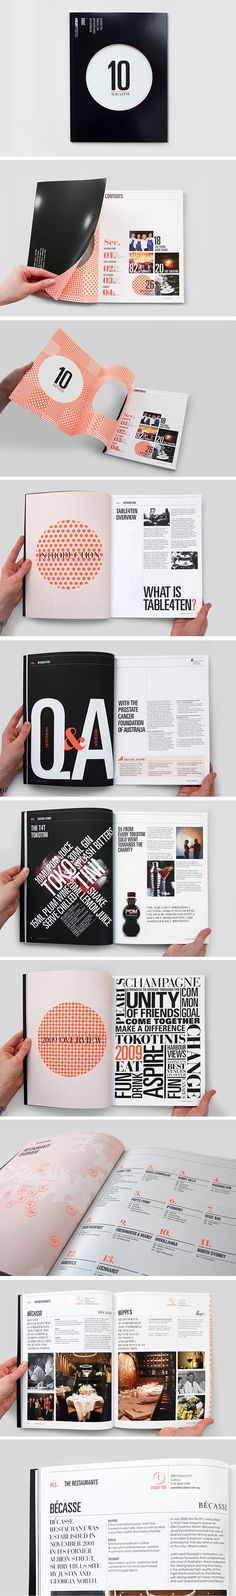 Nice use of typography and patterns for this magazine layout.: